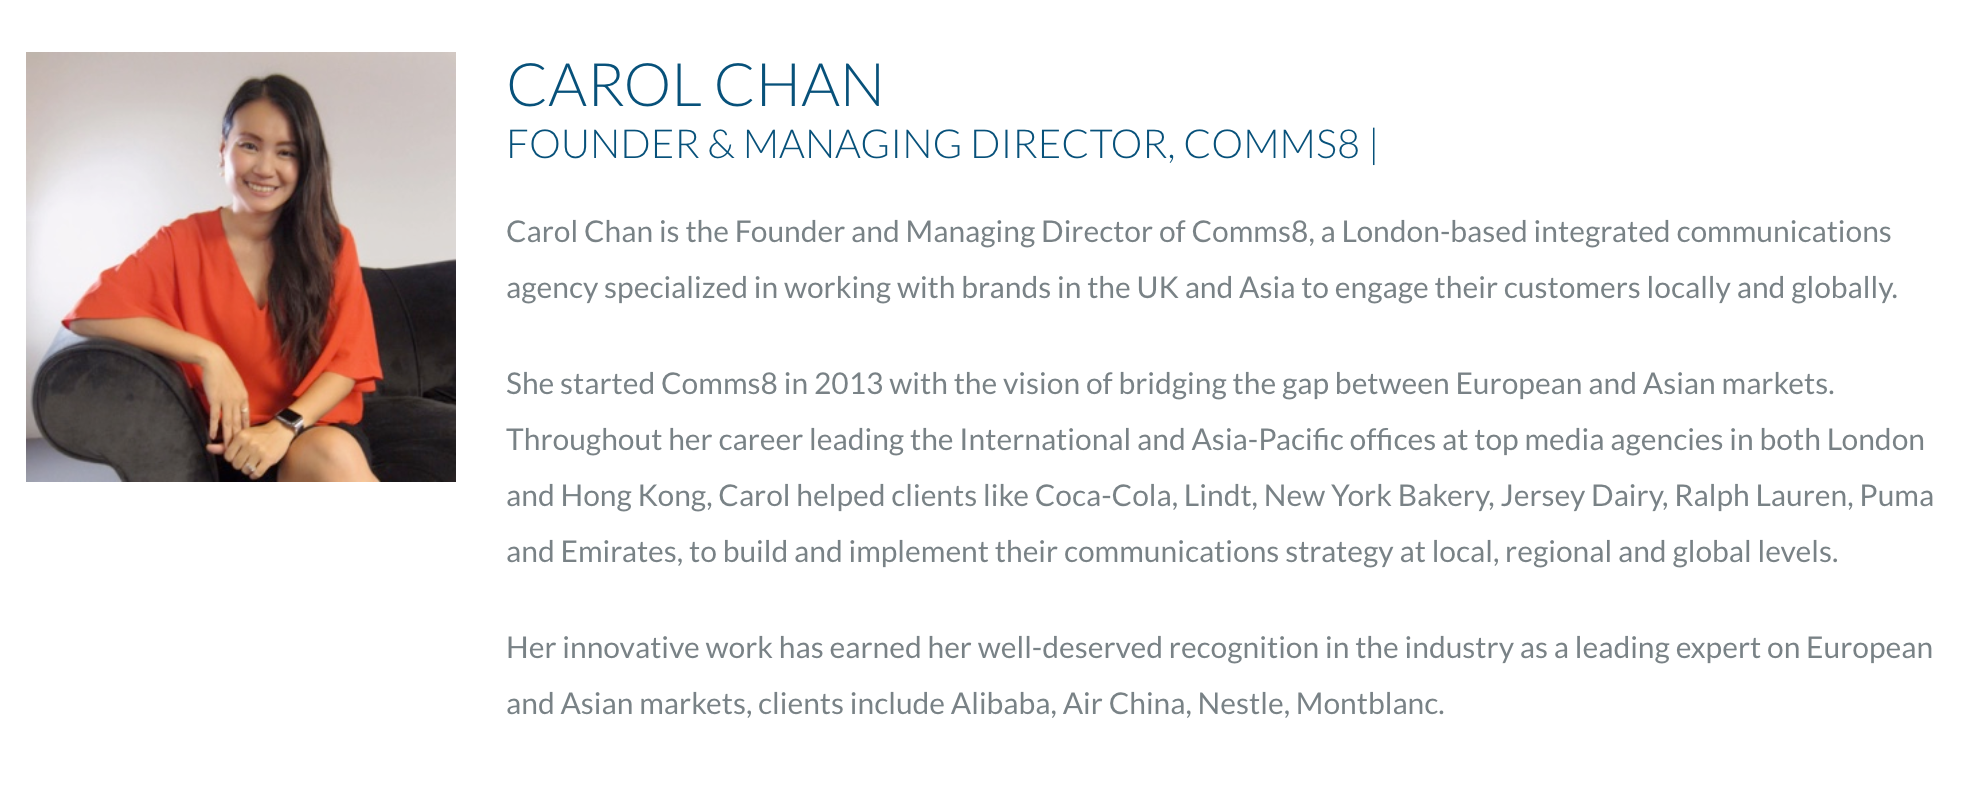 Carol Chan Joins Judging Panel for Upcoming PRCA DARE Awards